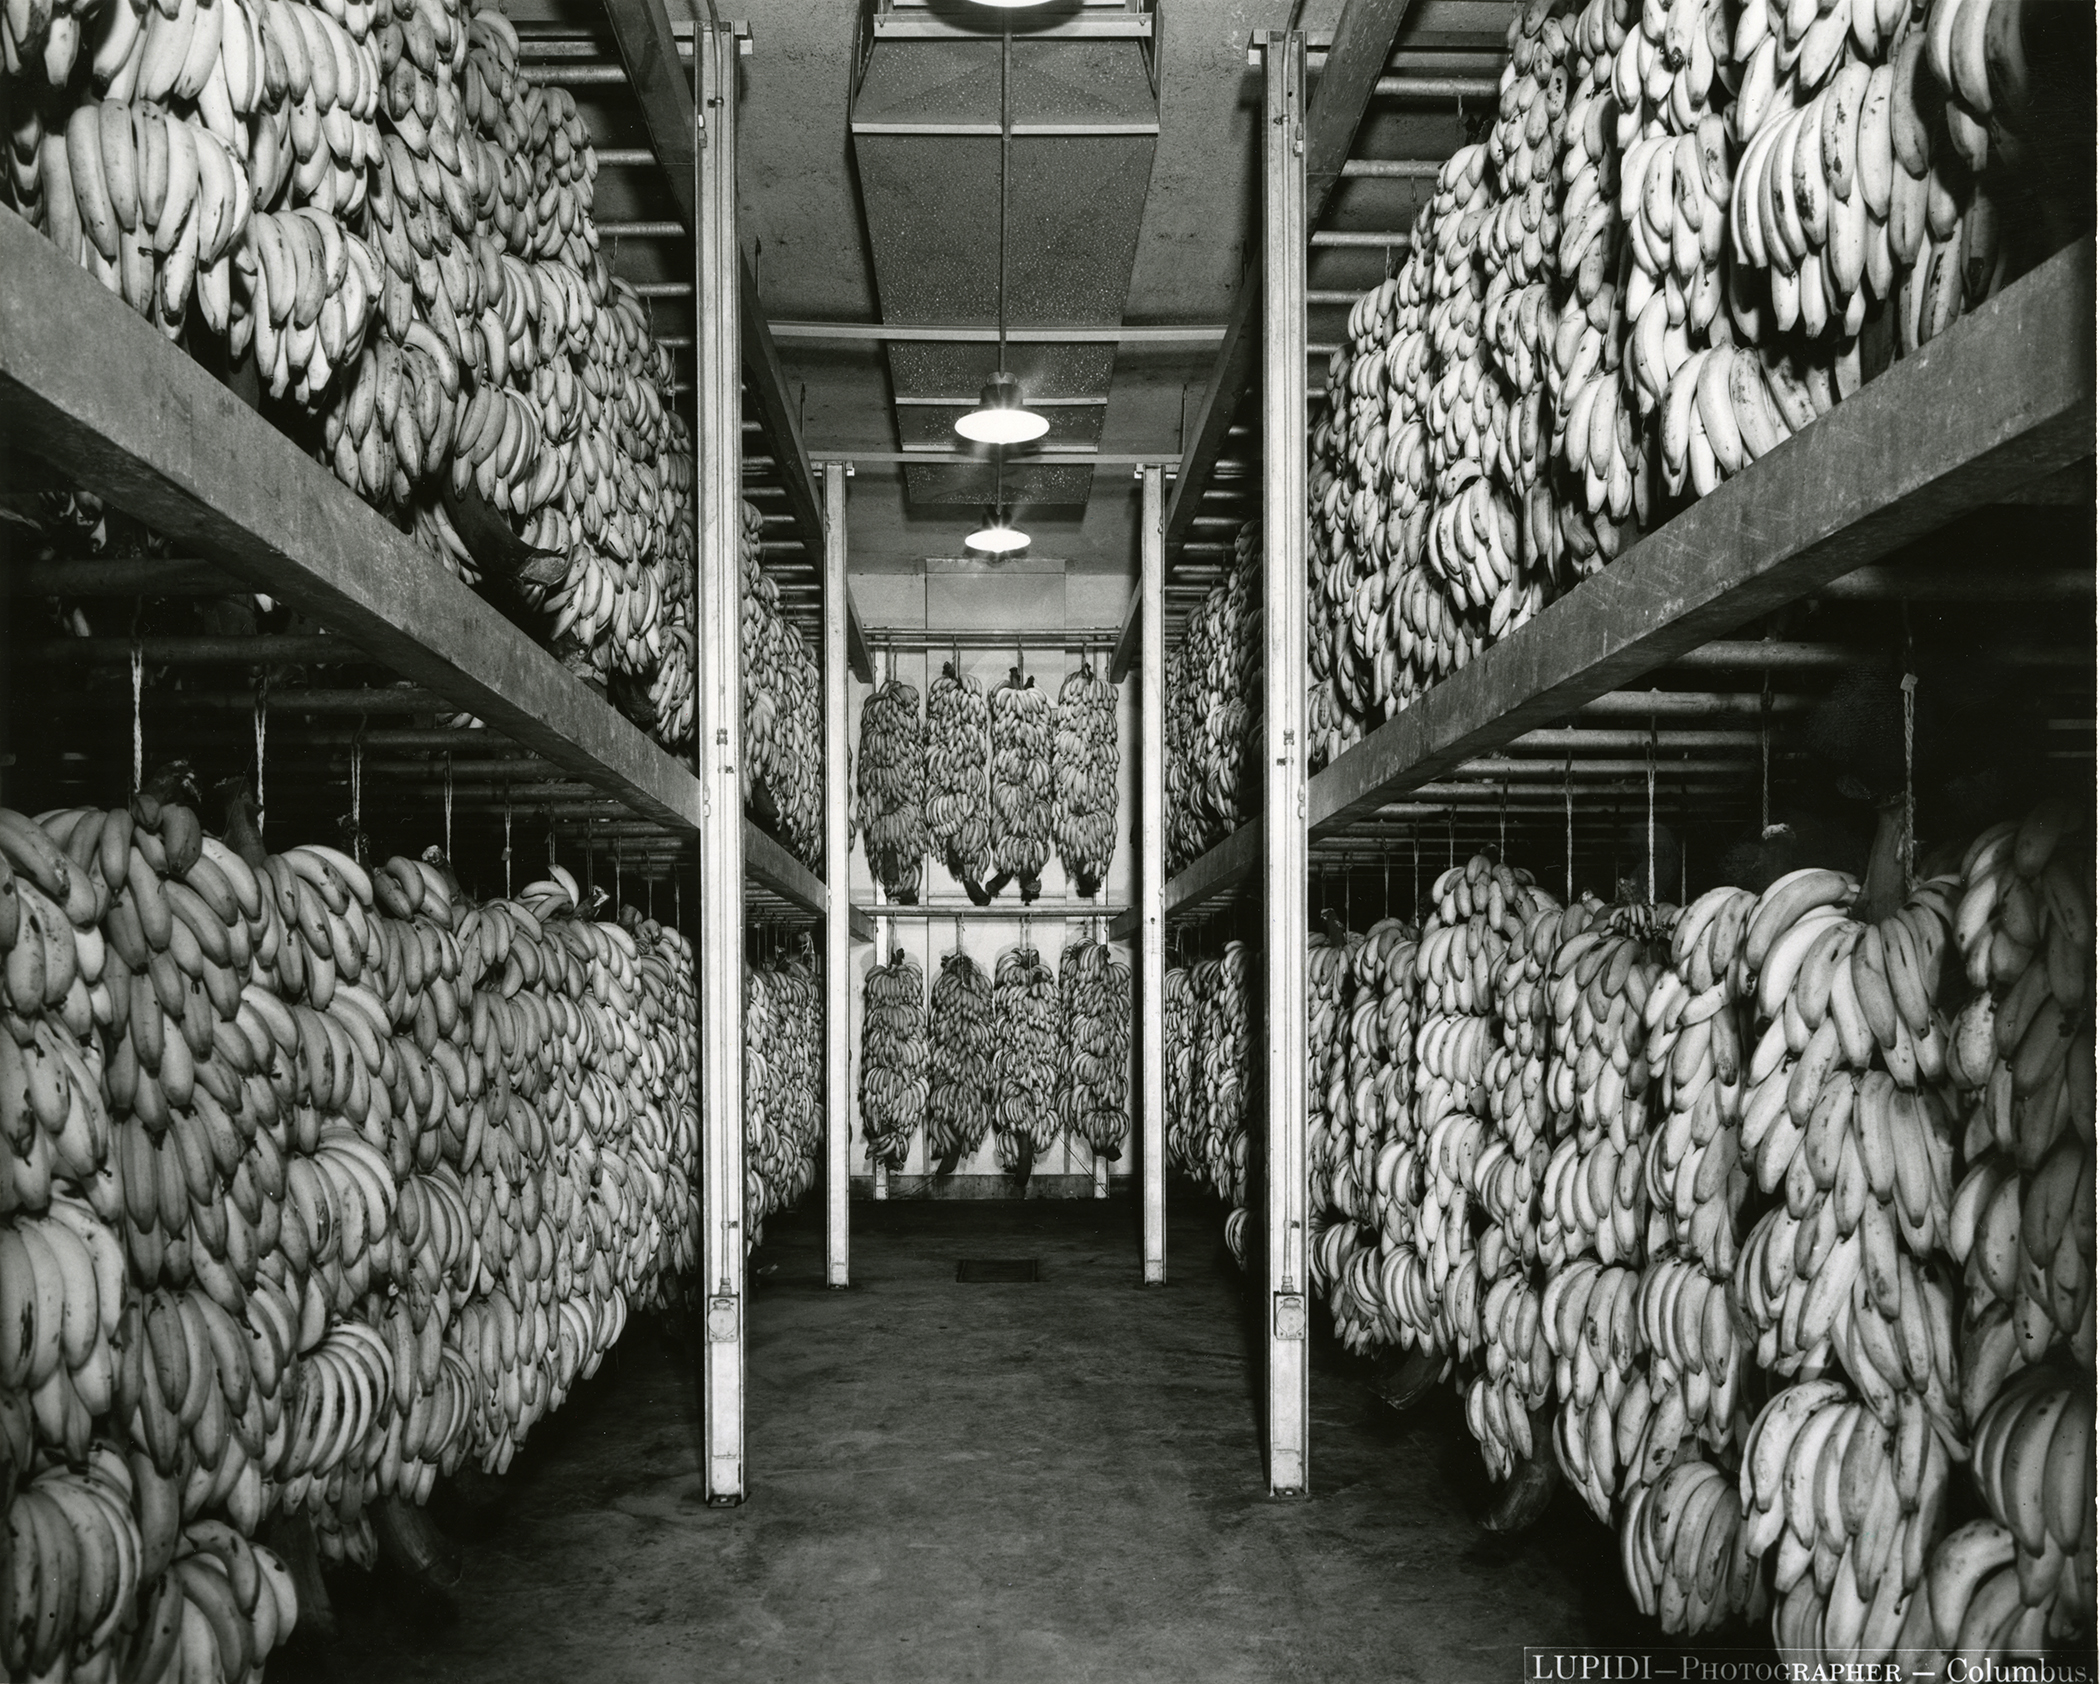 big-bear-warehouse-bananas-may-1957-copy